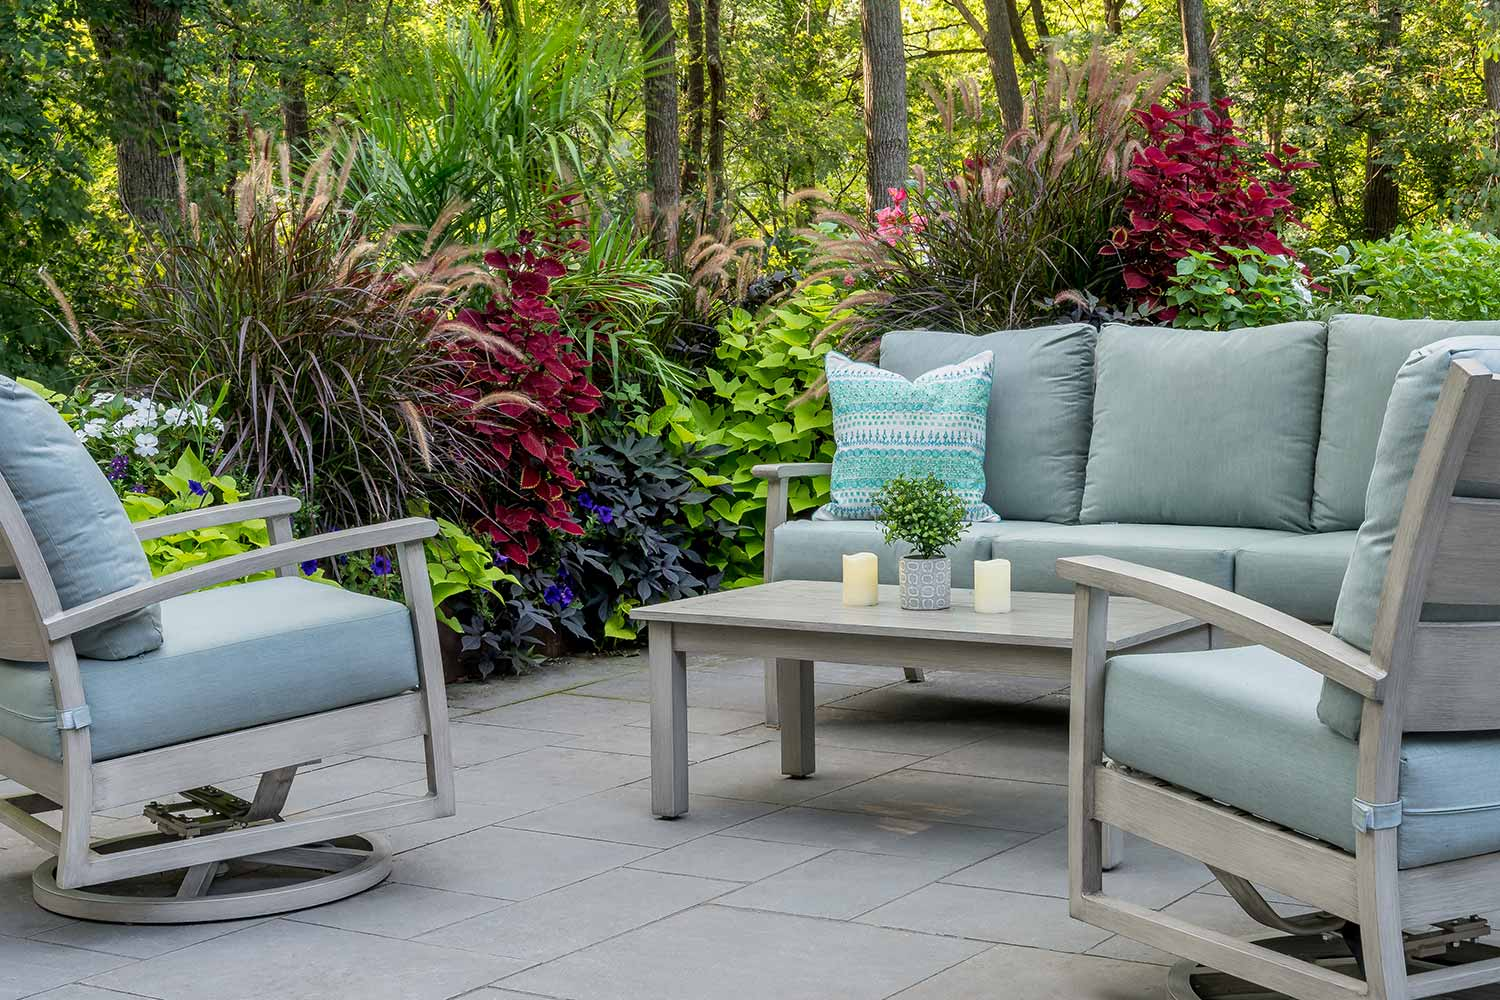 Seating patio with teeming garden